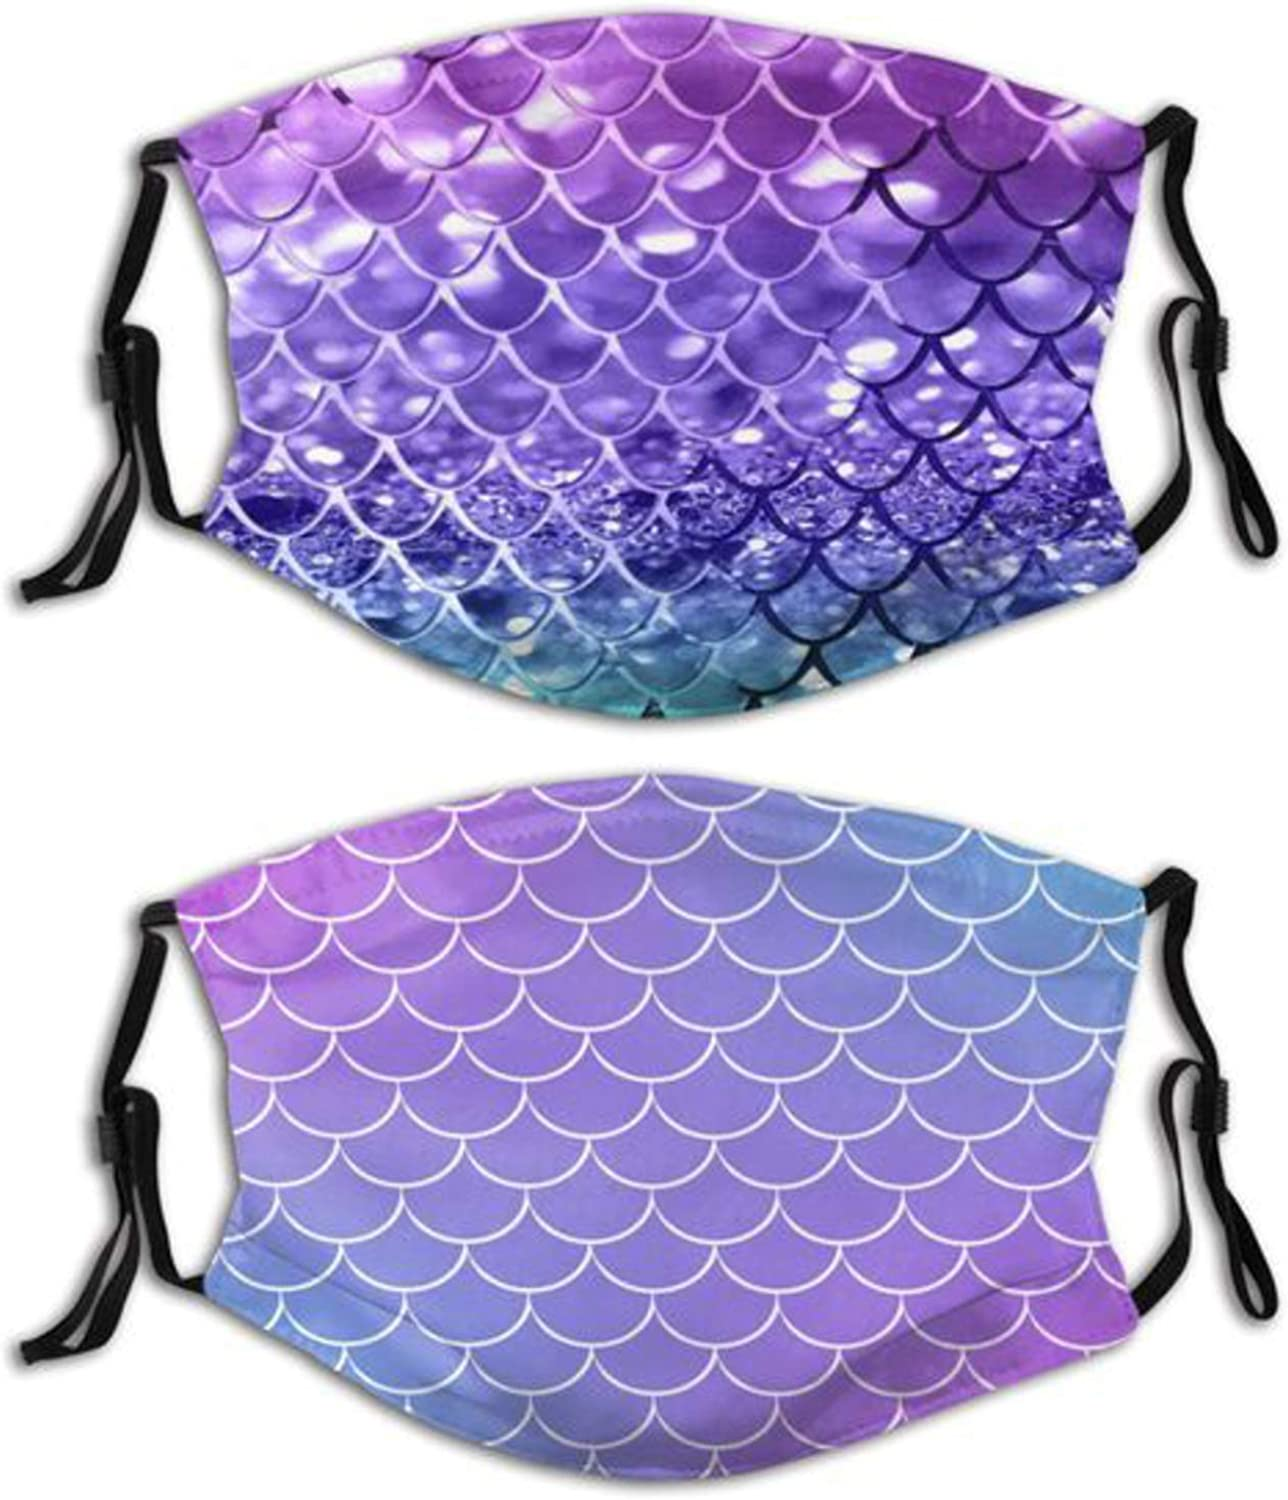 Mermaid quality assurance Face Max 40% OFF Mask with Filters for Washable Mo Reusable Men